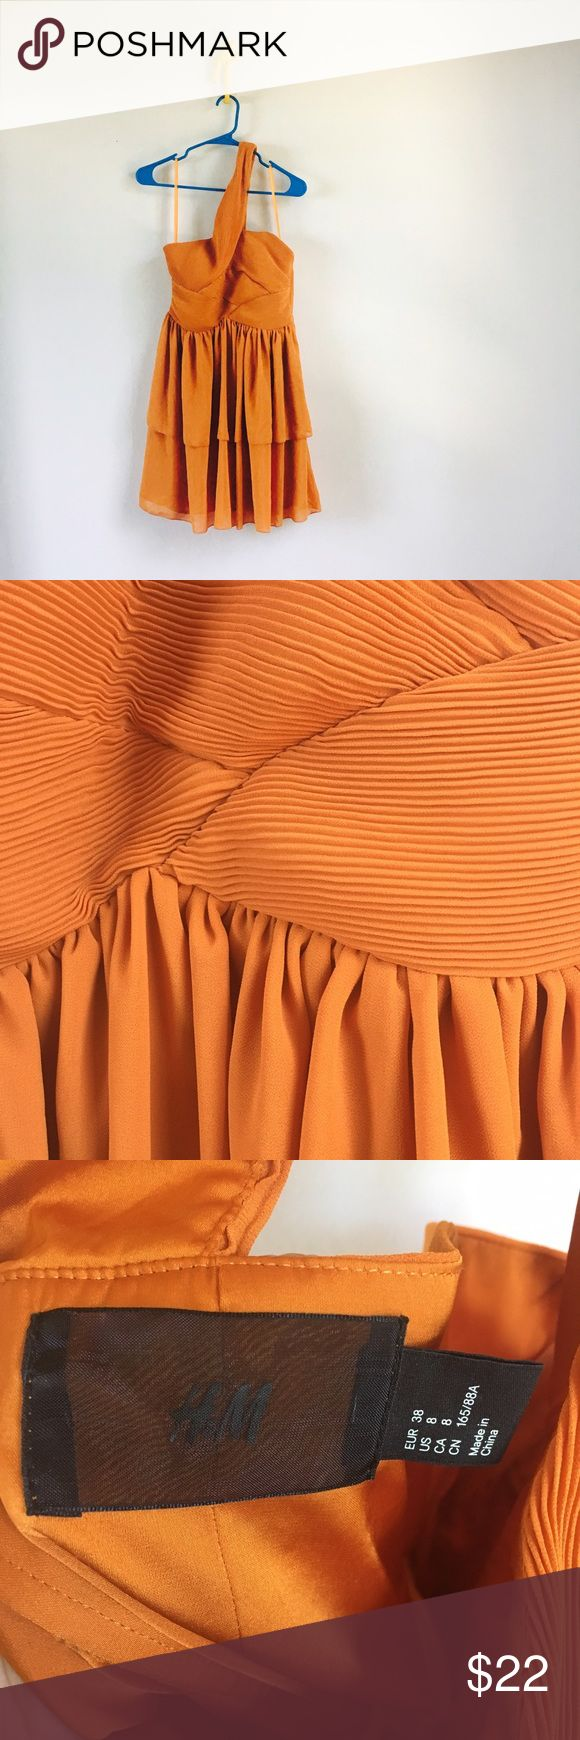 70s inspired H&M mini dress 70s inspired H&M size 8 mini dress. Retro orange. Fitted notice with pleat details. Cross-body single shoulder strap. Defined waistline. Flowing skirt. H&M Dresses One Shoulder